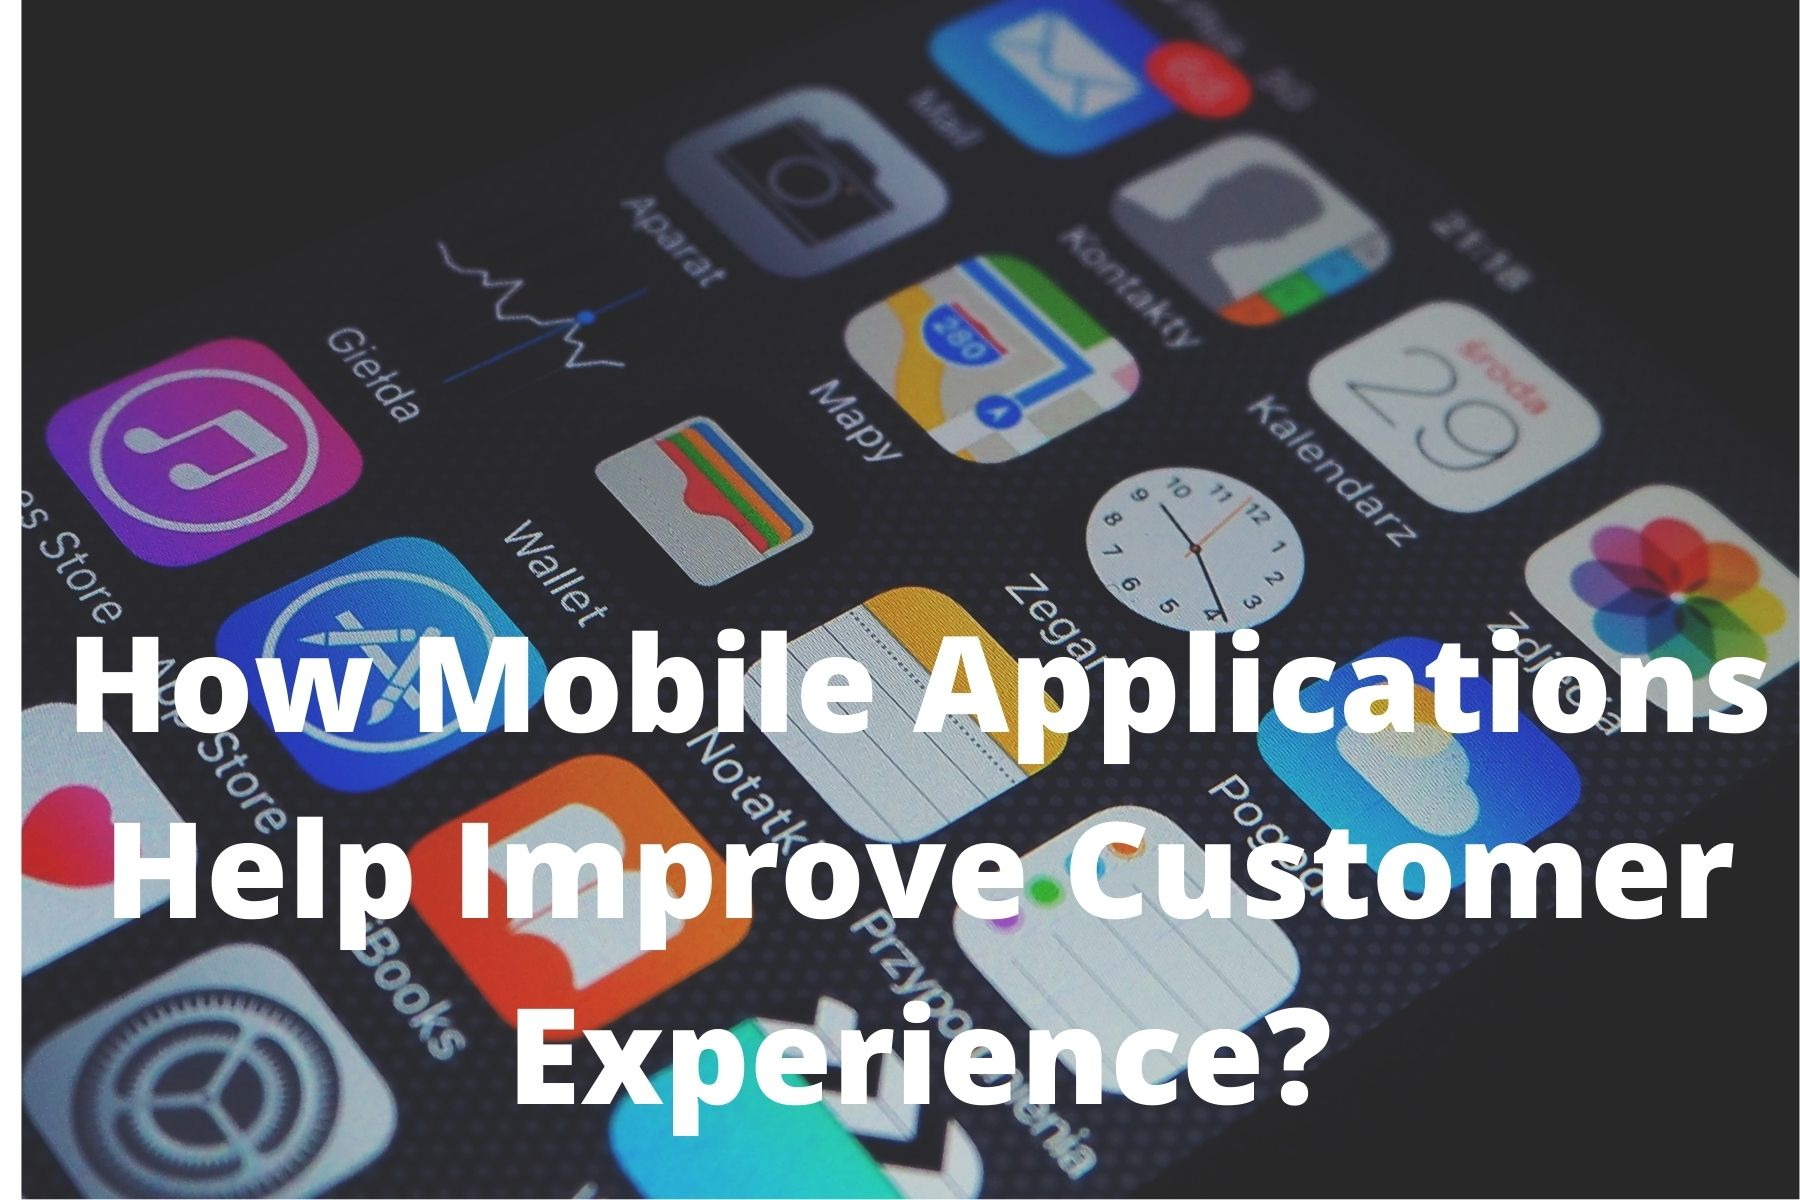 How Mobile Applications Help Improve Customer Experience